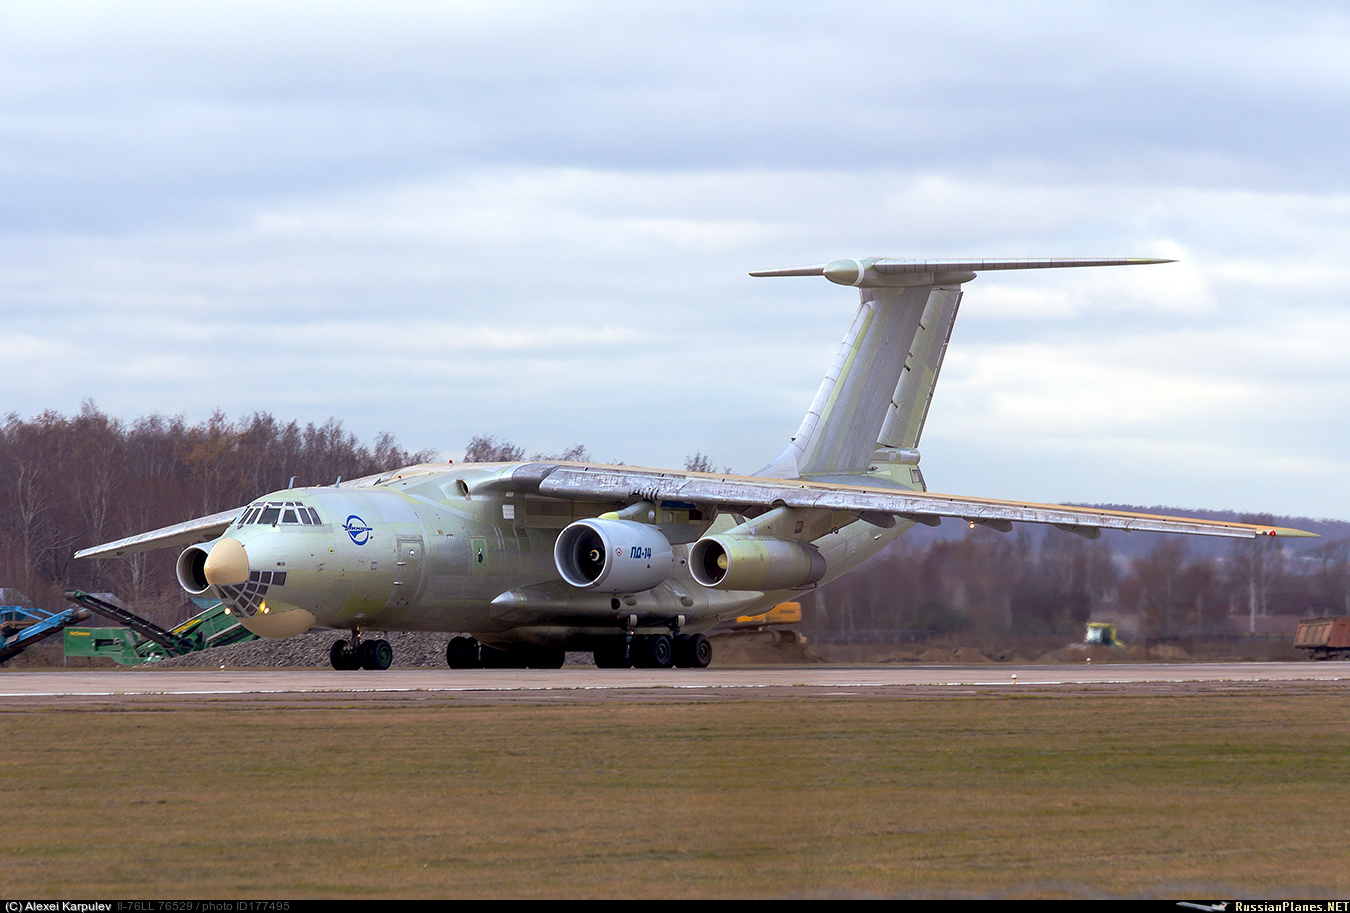 http://russianplanes.net/images/to178000/177495.jpg